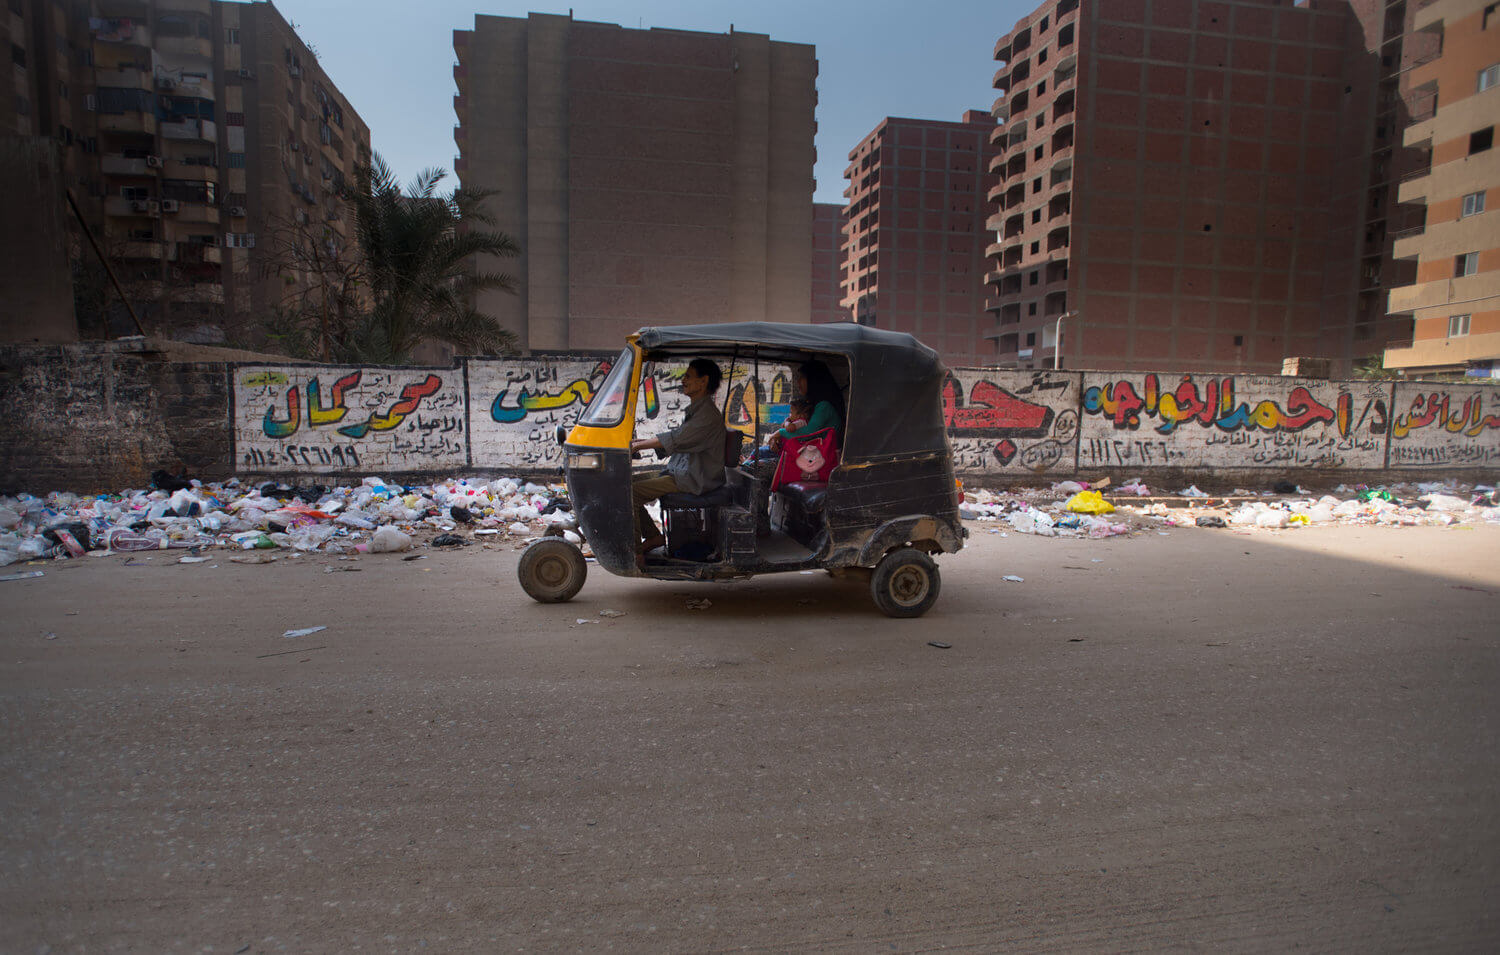 Photojournal: navigating through Cairo's contrasting realities